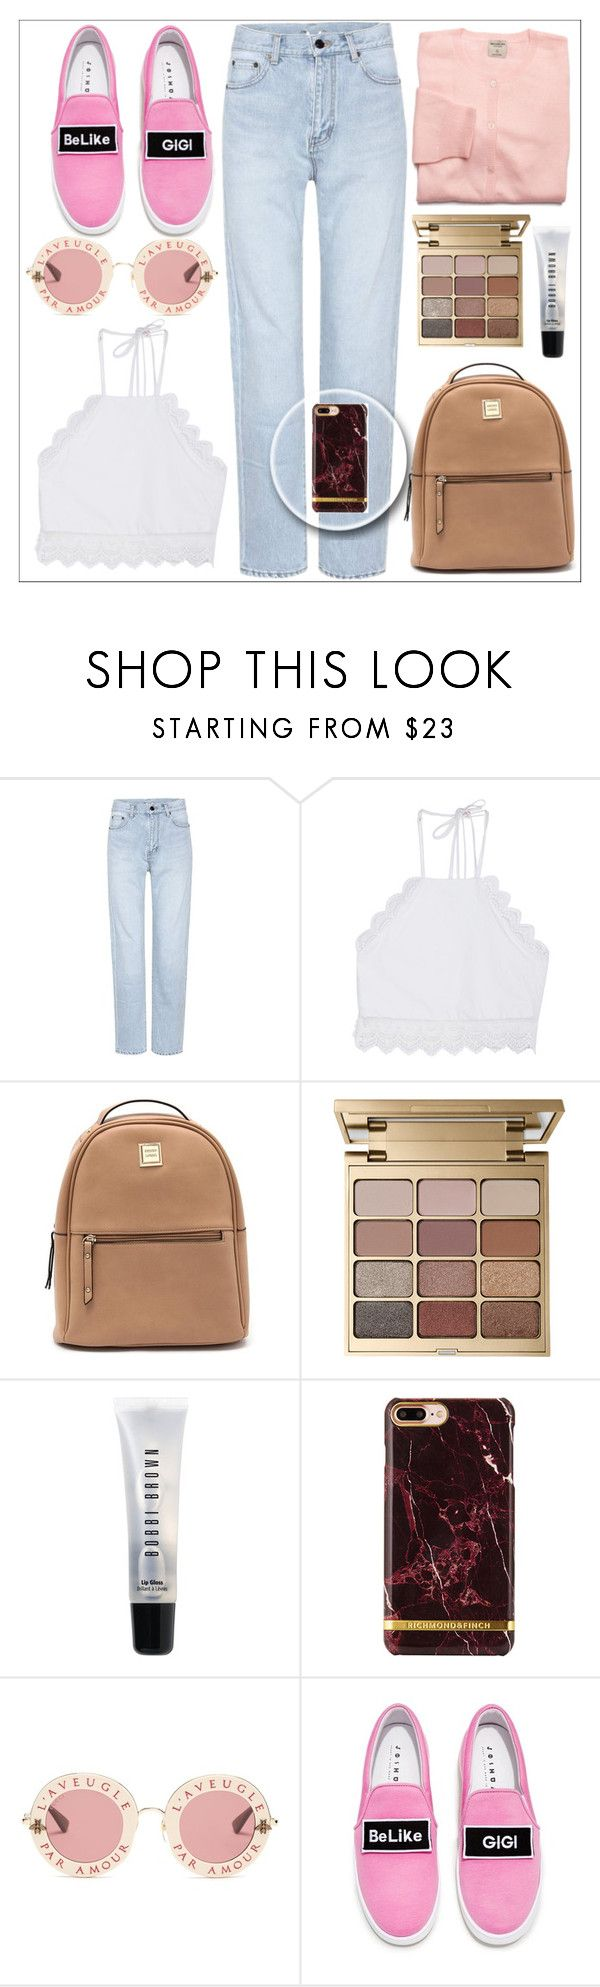 """""""make your life easier!!"""" by juhibieber1 ❤ liked on Polyvore featuring Yves Saint Laurent, Front Row Shop, Stila, Bobbi Brown Cosmetics, Gucci and Joshua's"""